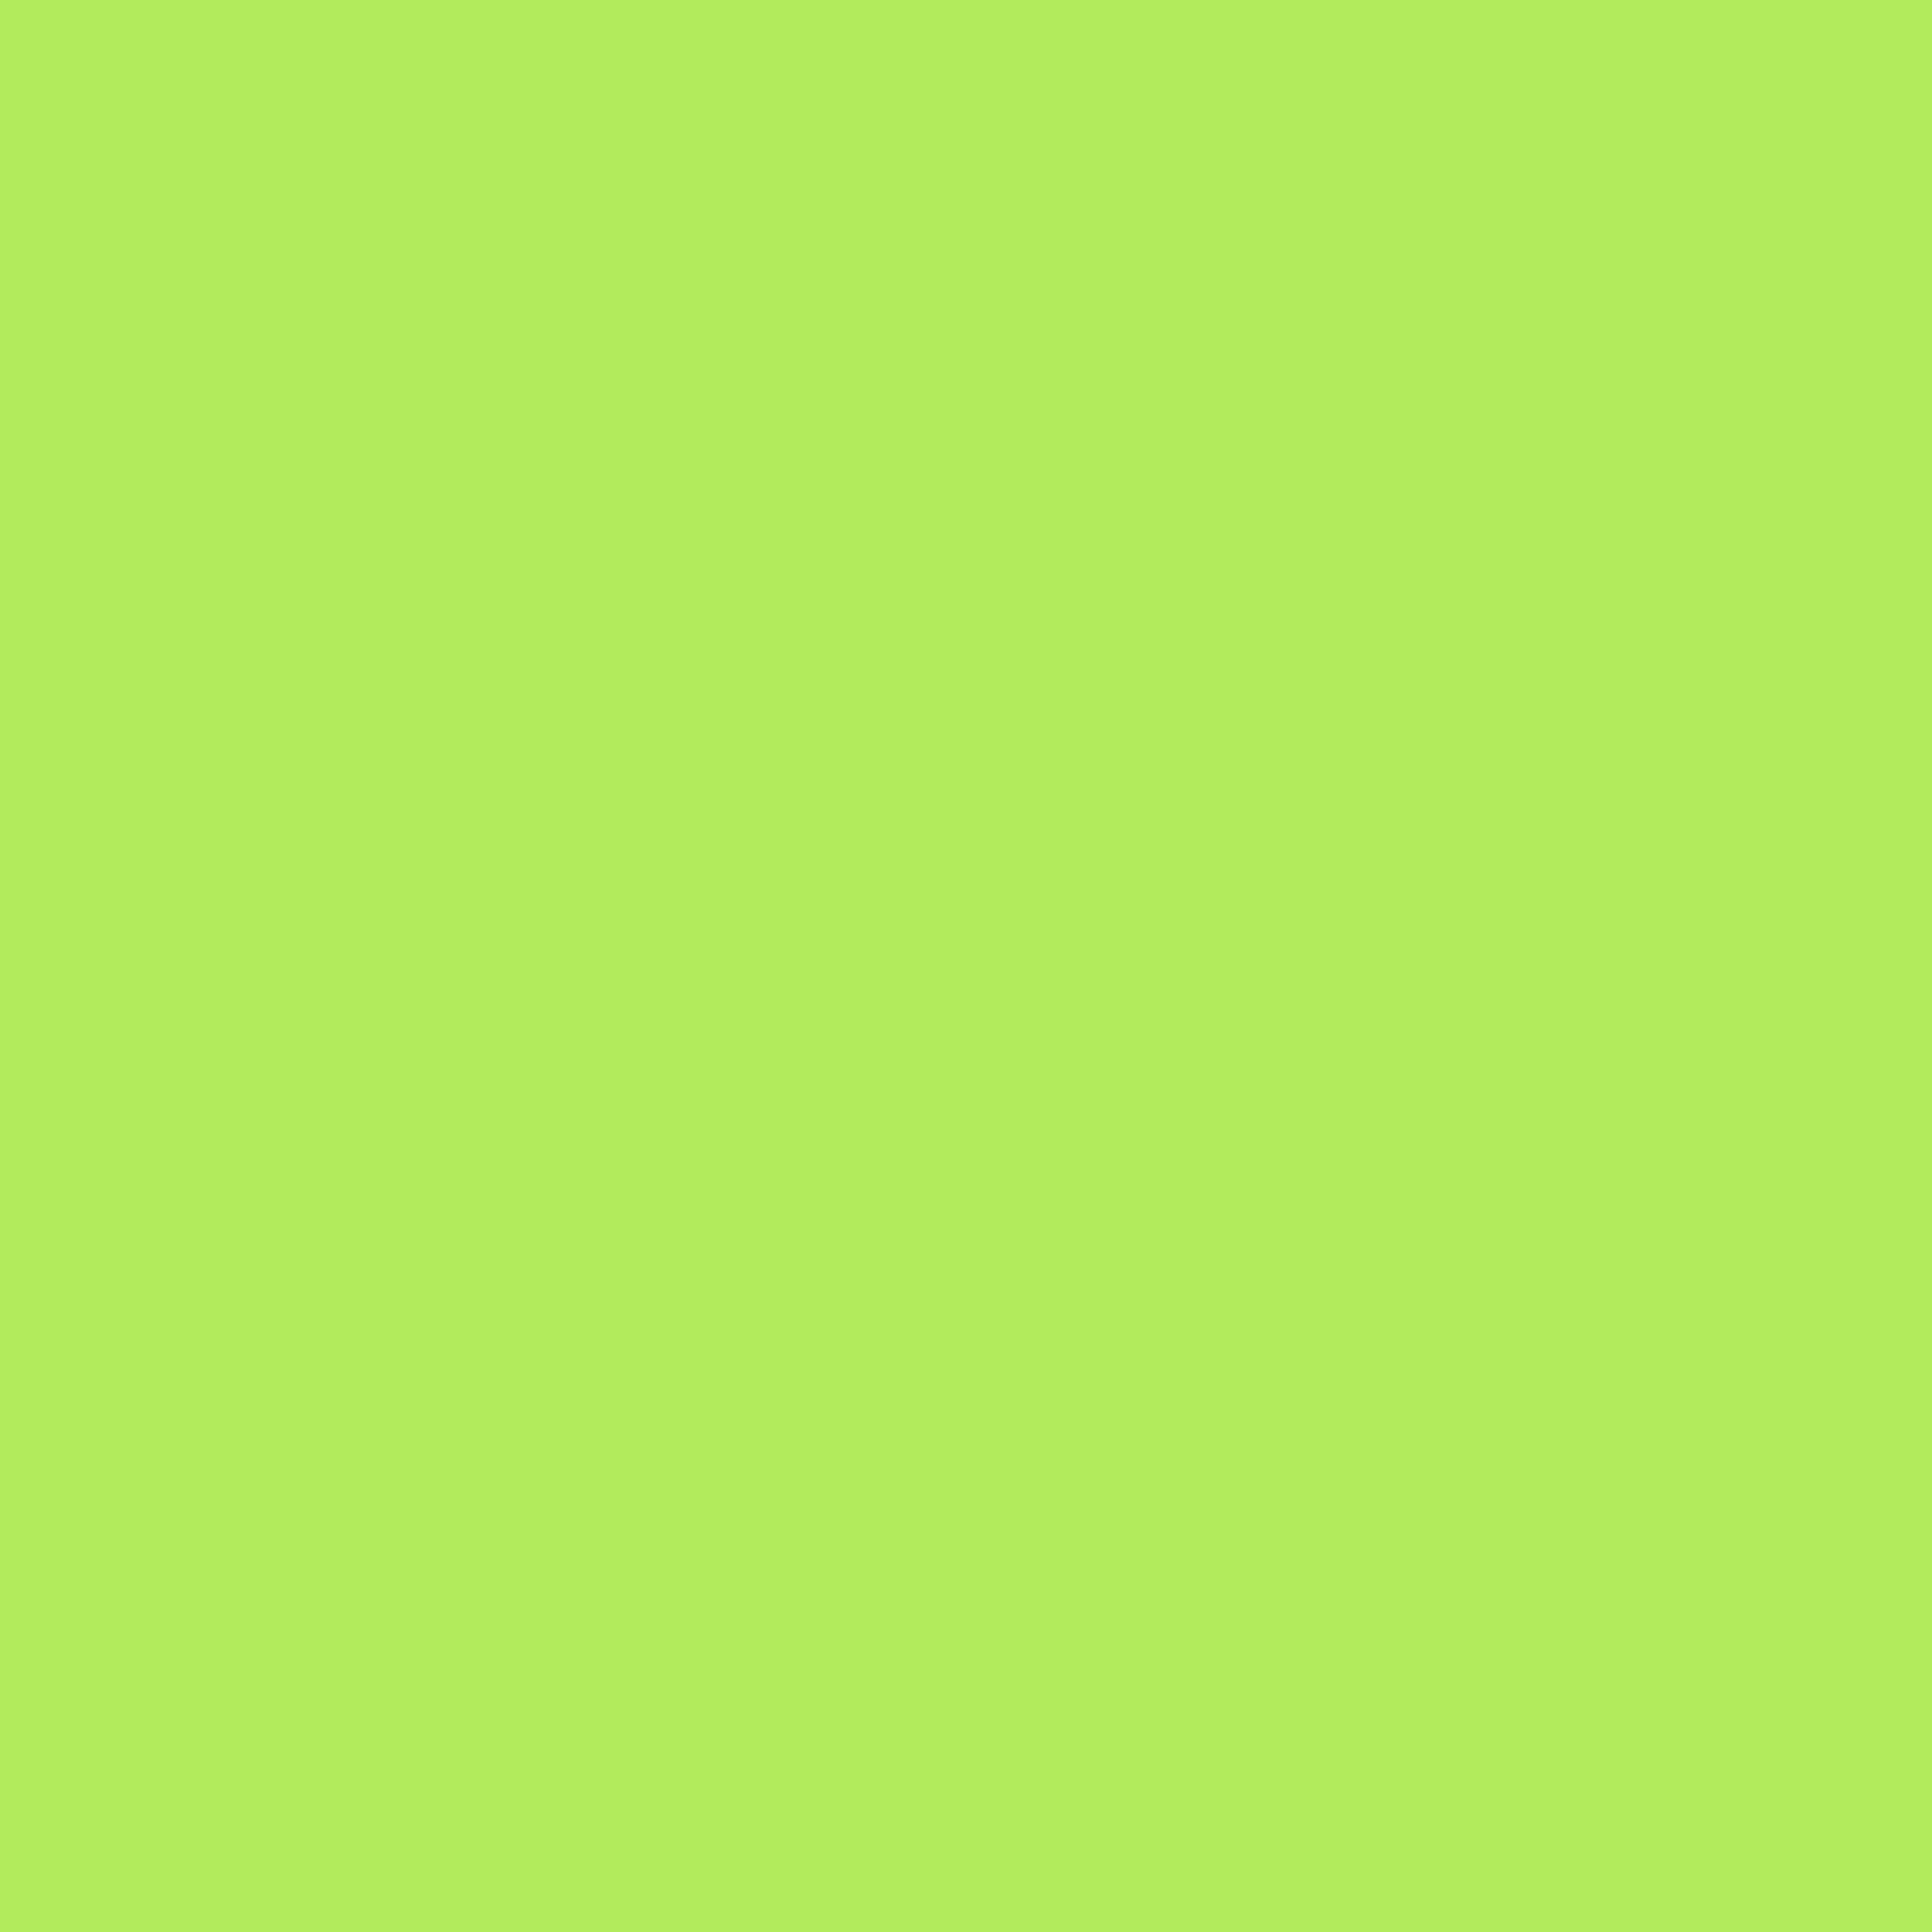 3600x3600 Inchworm Solid Color Background